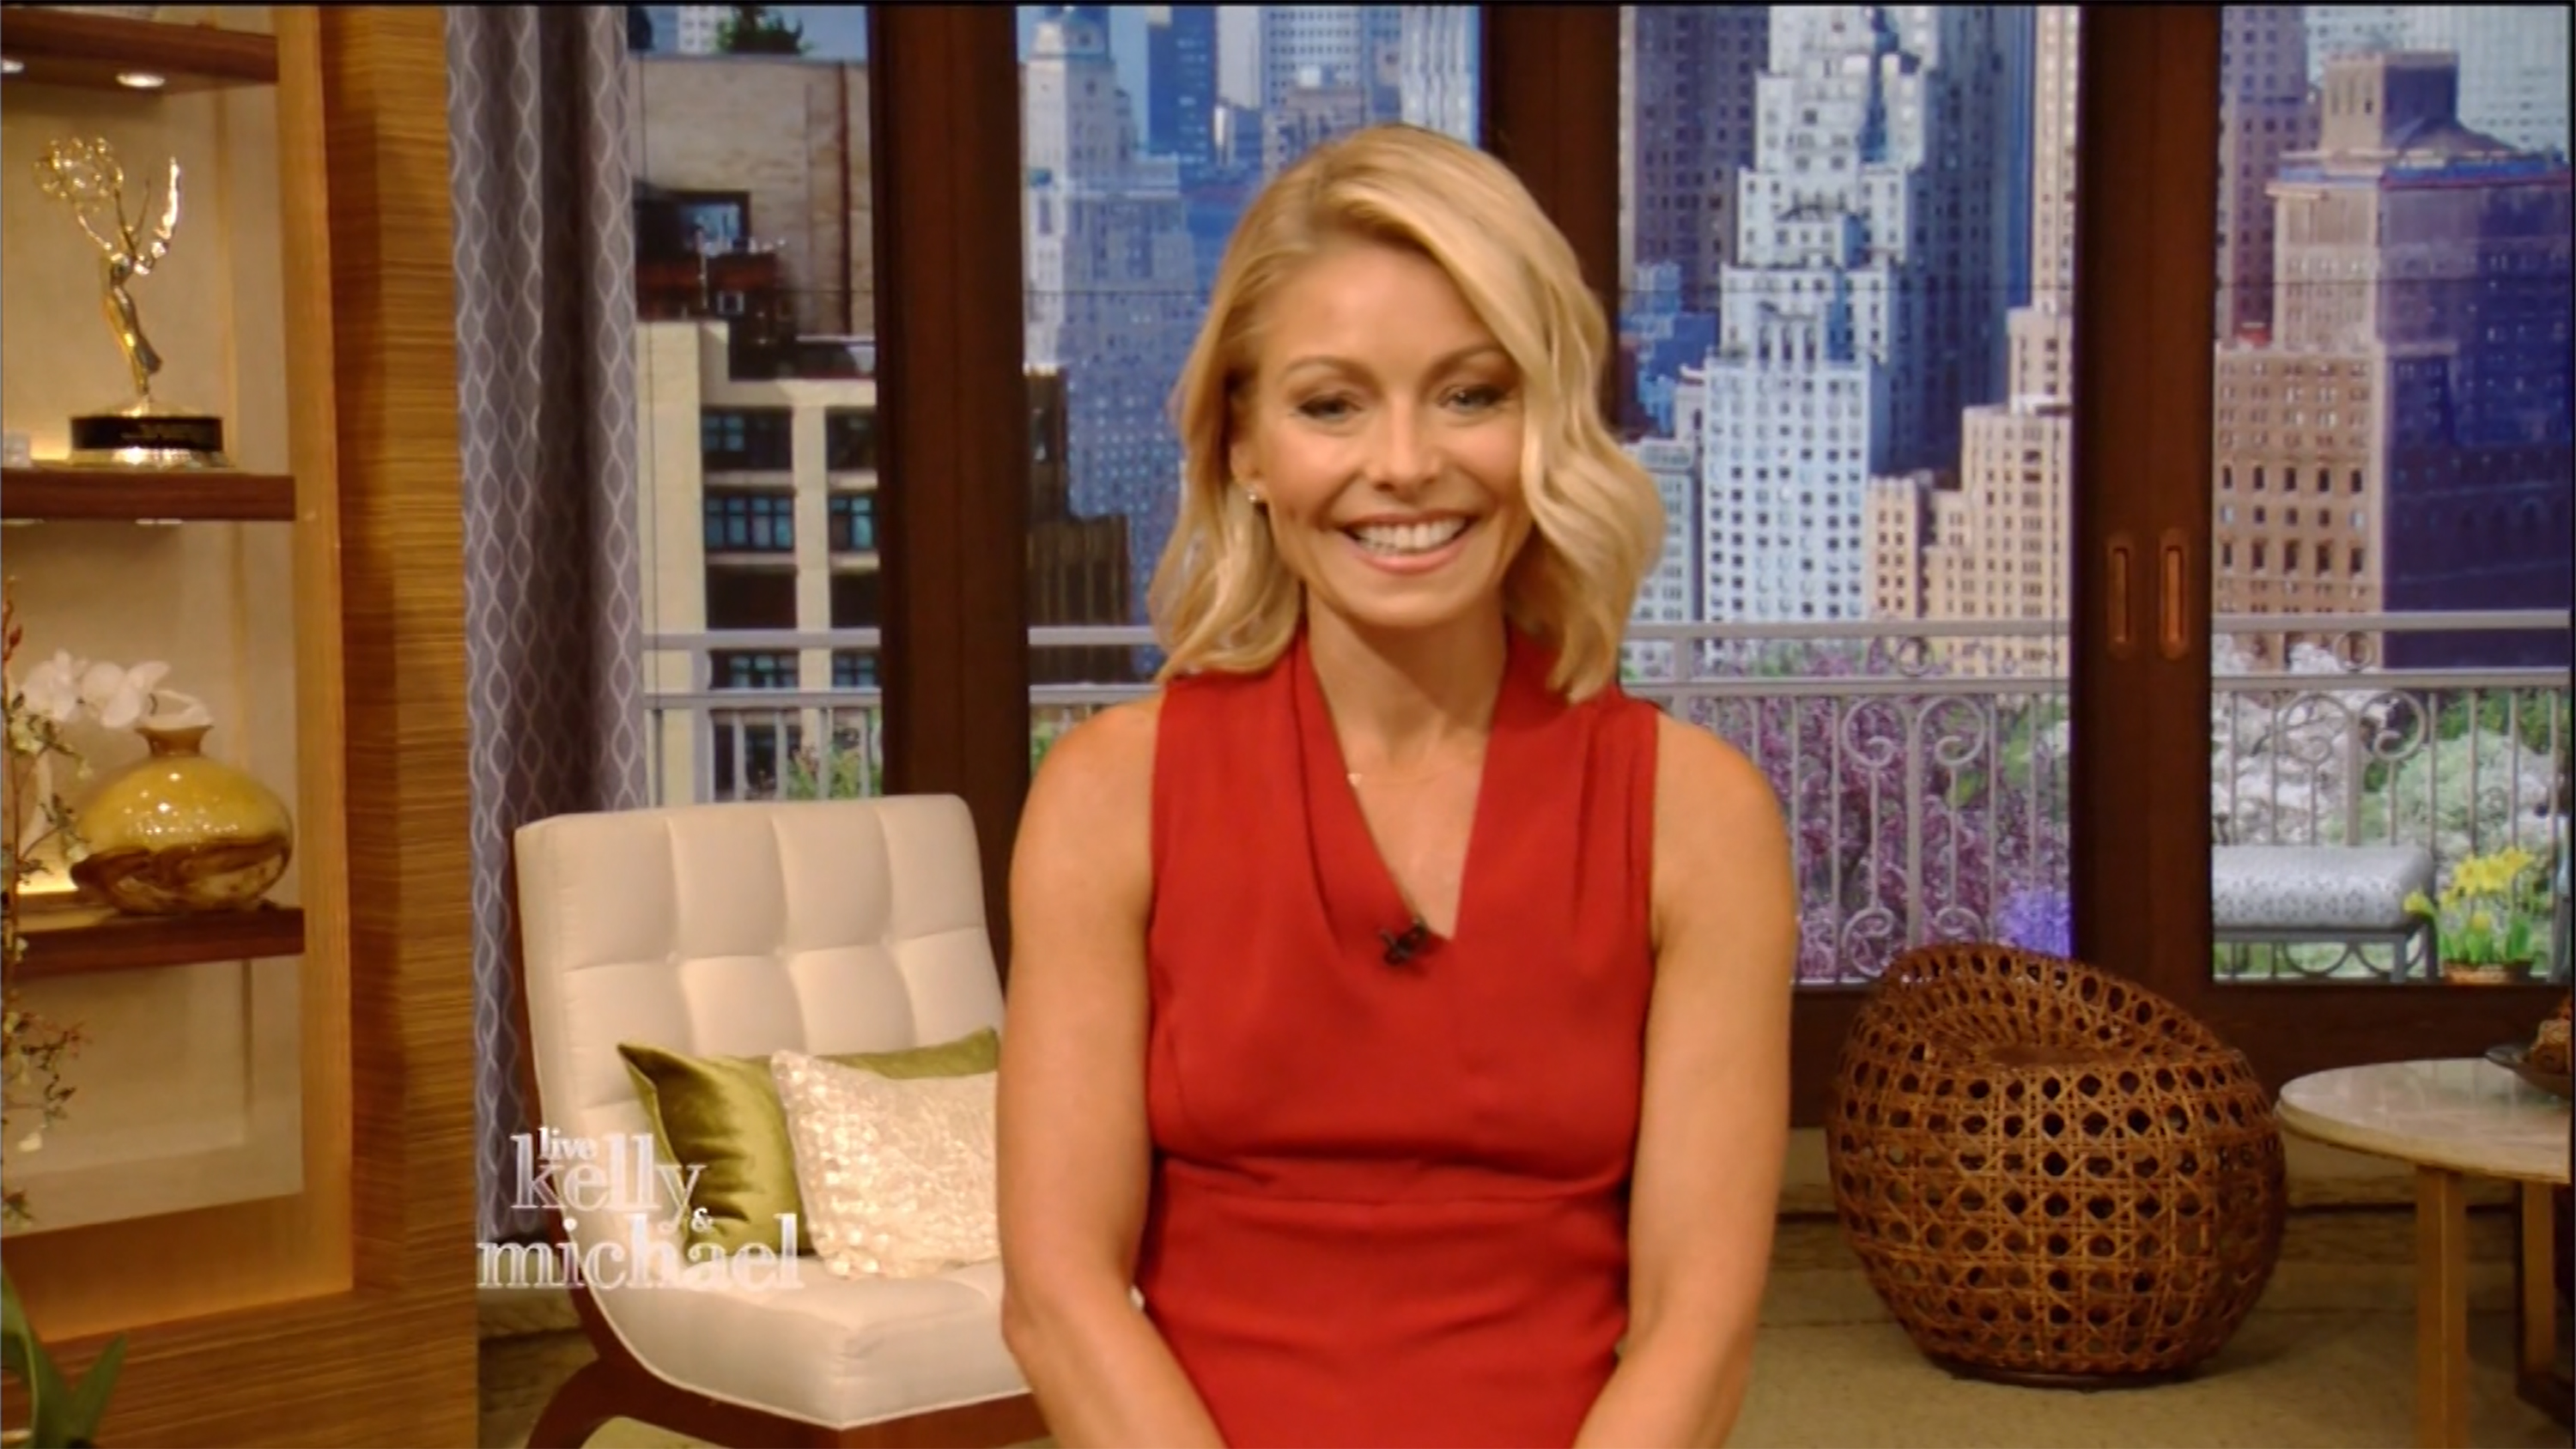 Watch Kelly Ripas Emotional Return to Live Watch Kelly Ripas Emotional Return to Live new picture